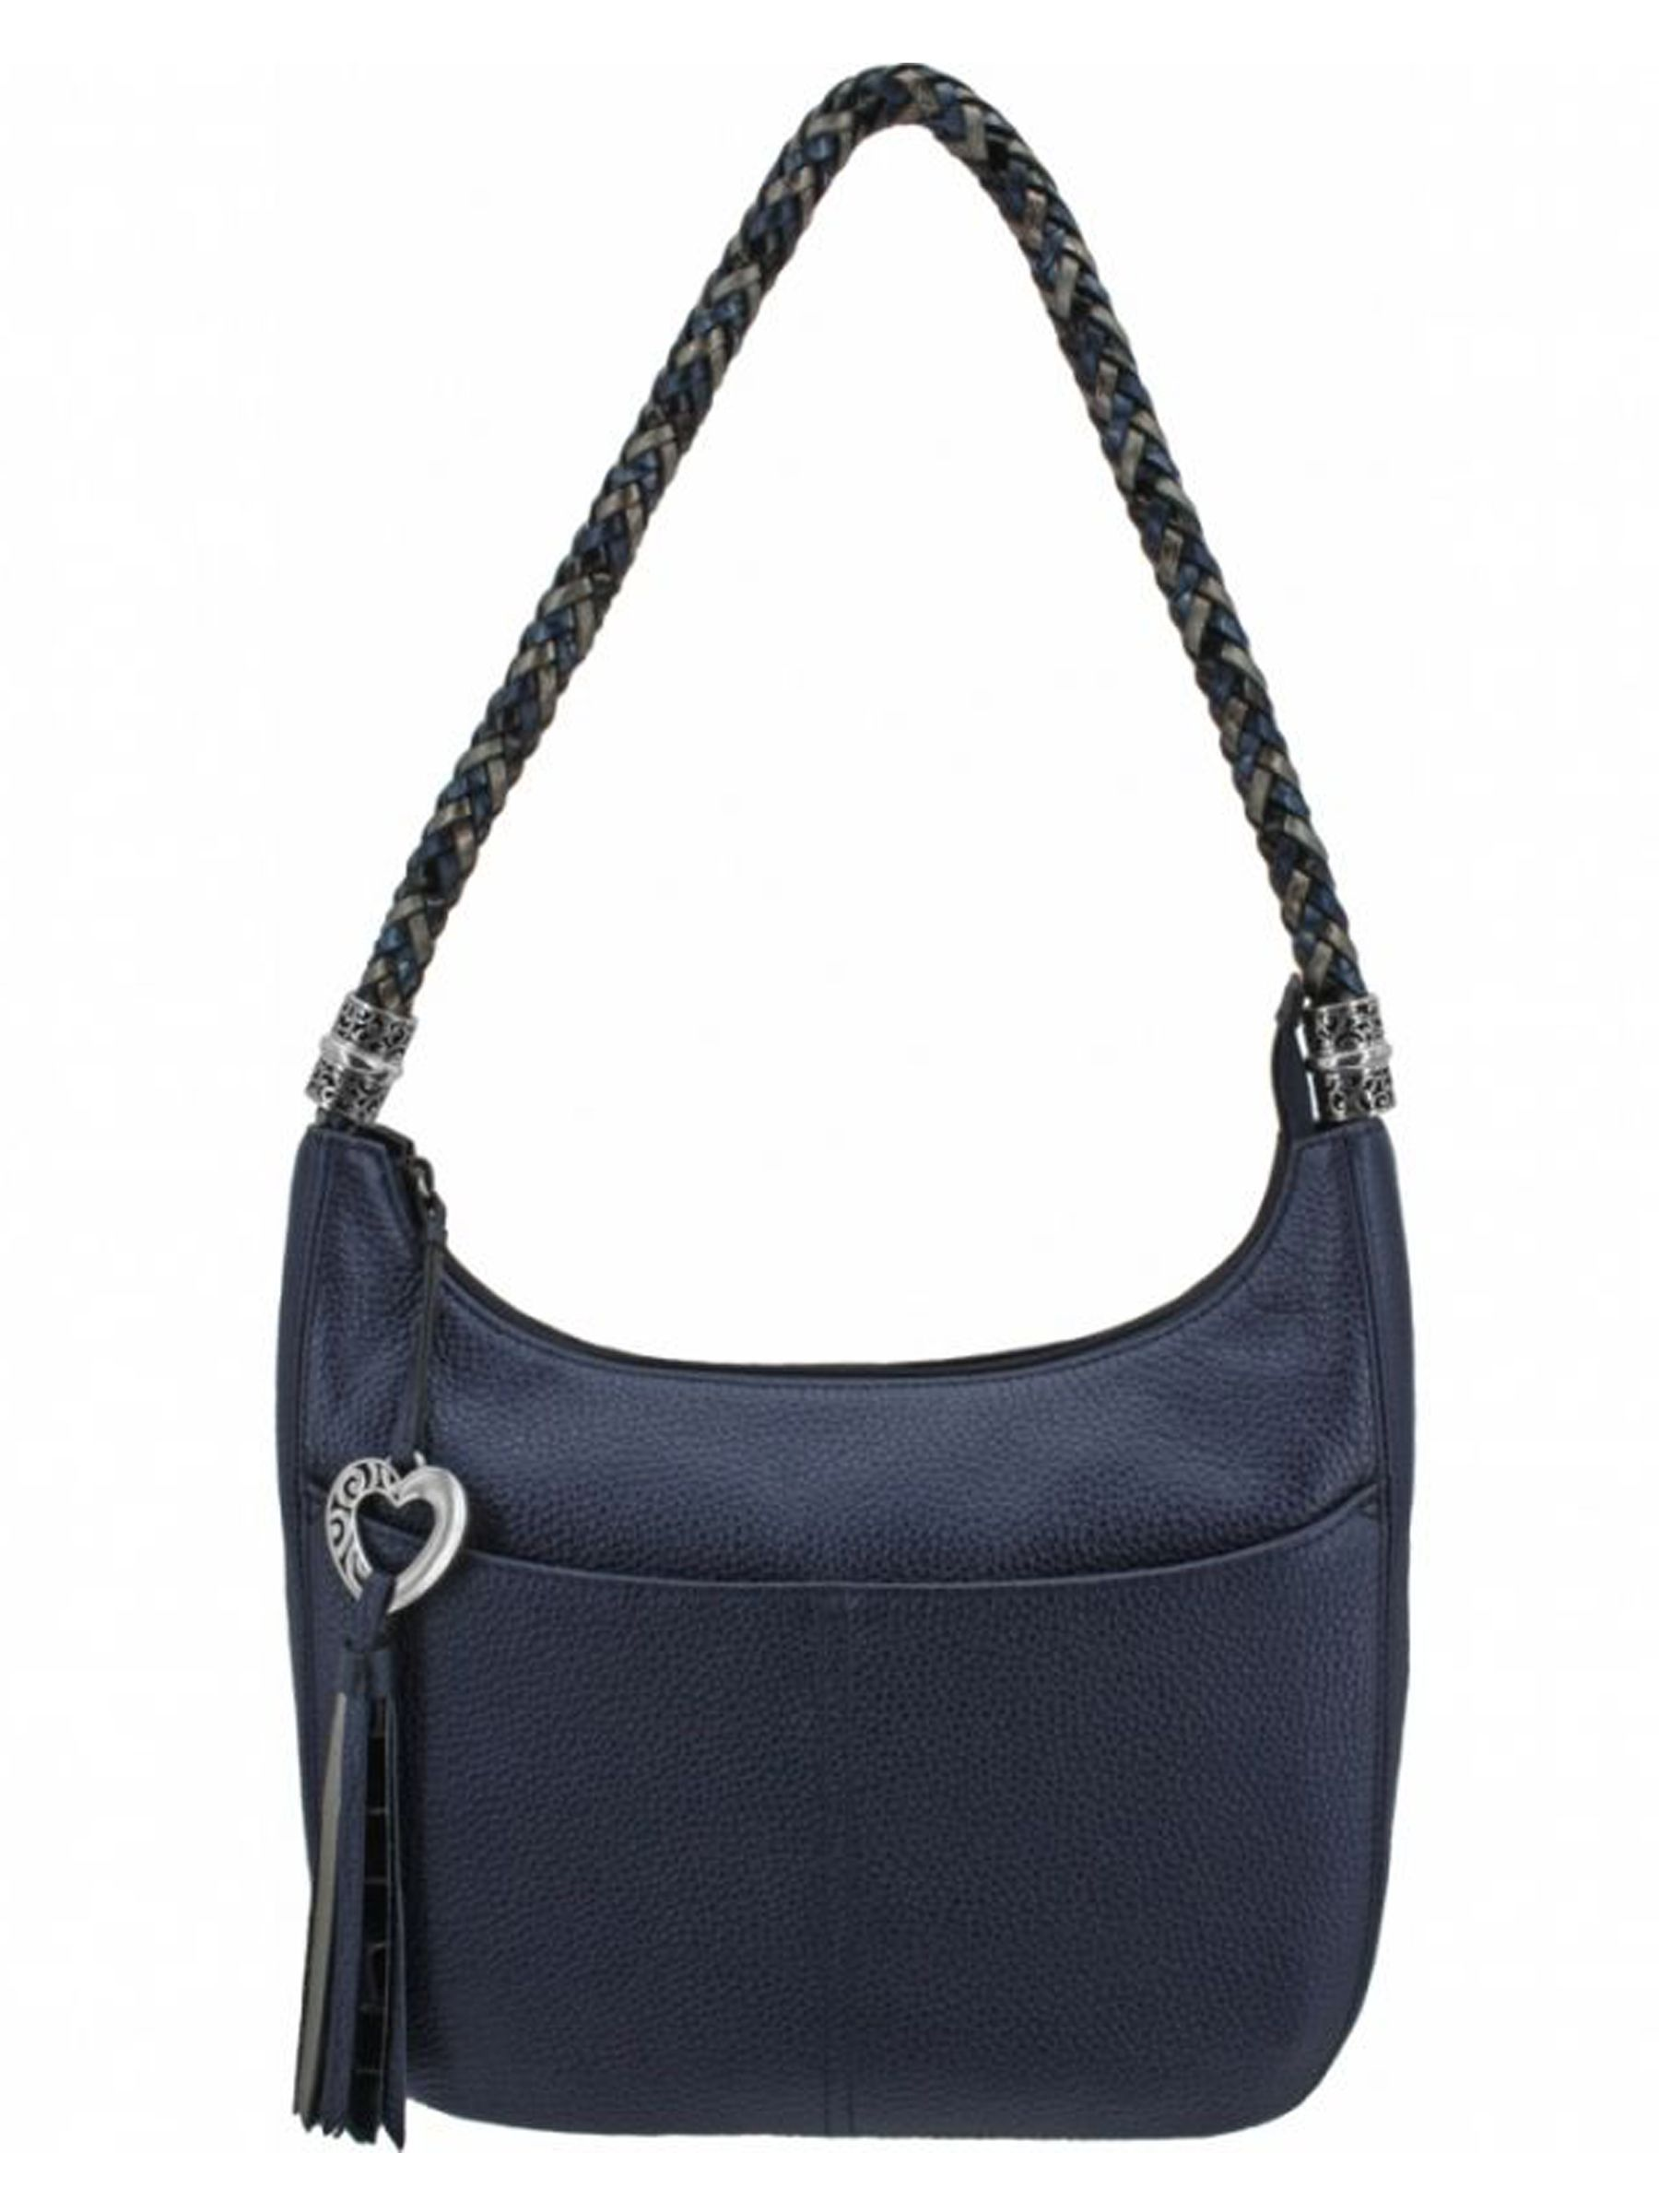 f589313ee3 Barbados Hobo I love this handbag. It is simple and classic. Of course, the  best thing is that it is BRIGHTON!